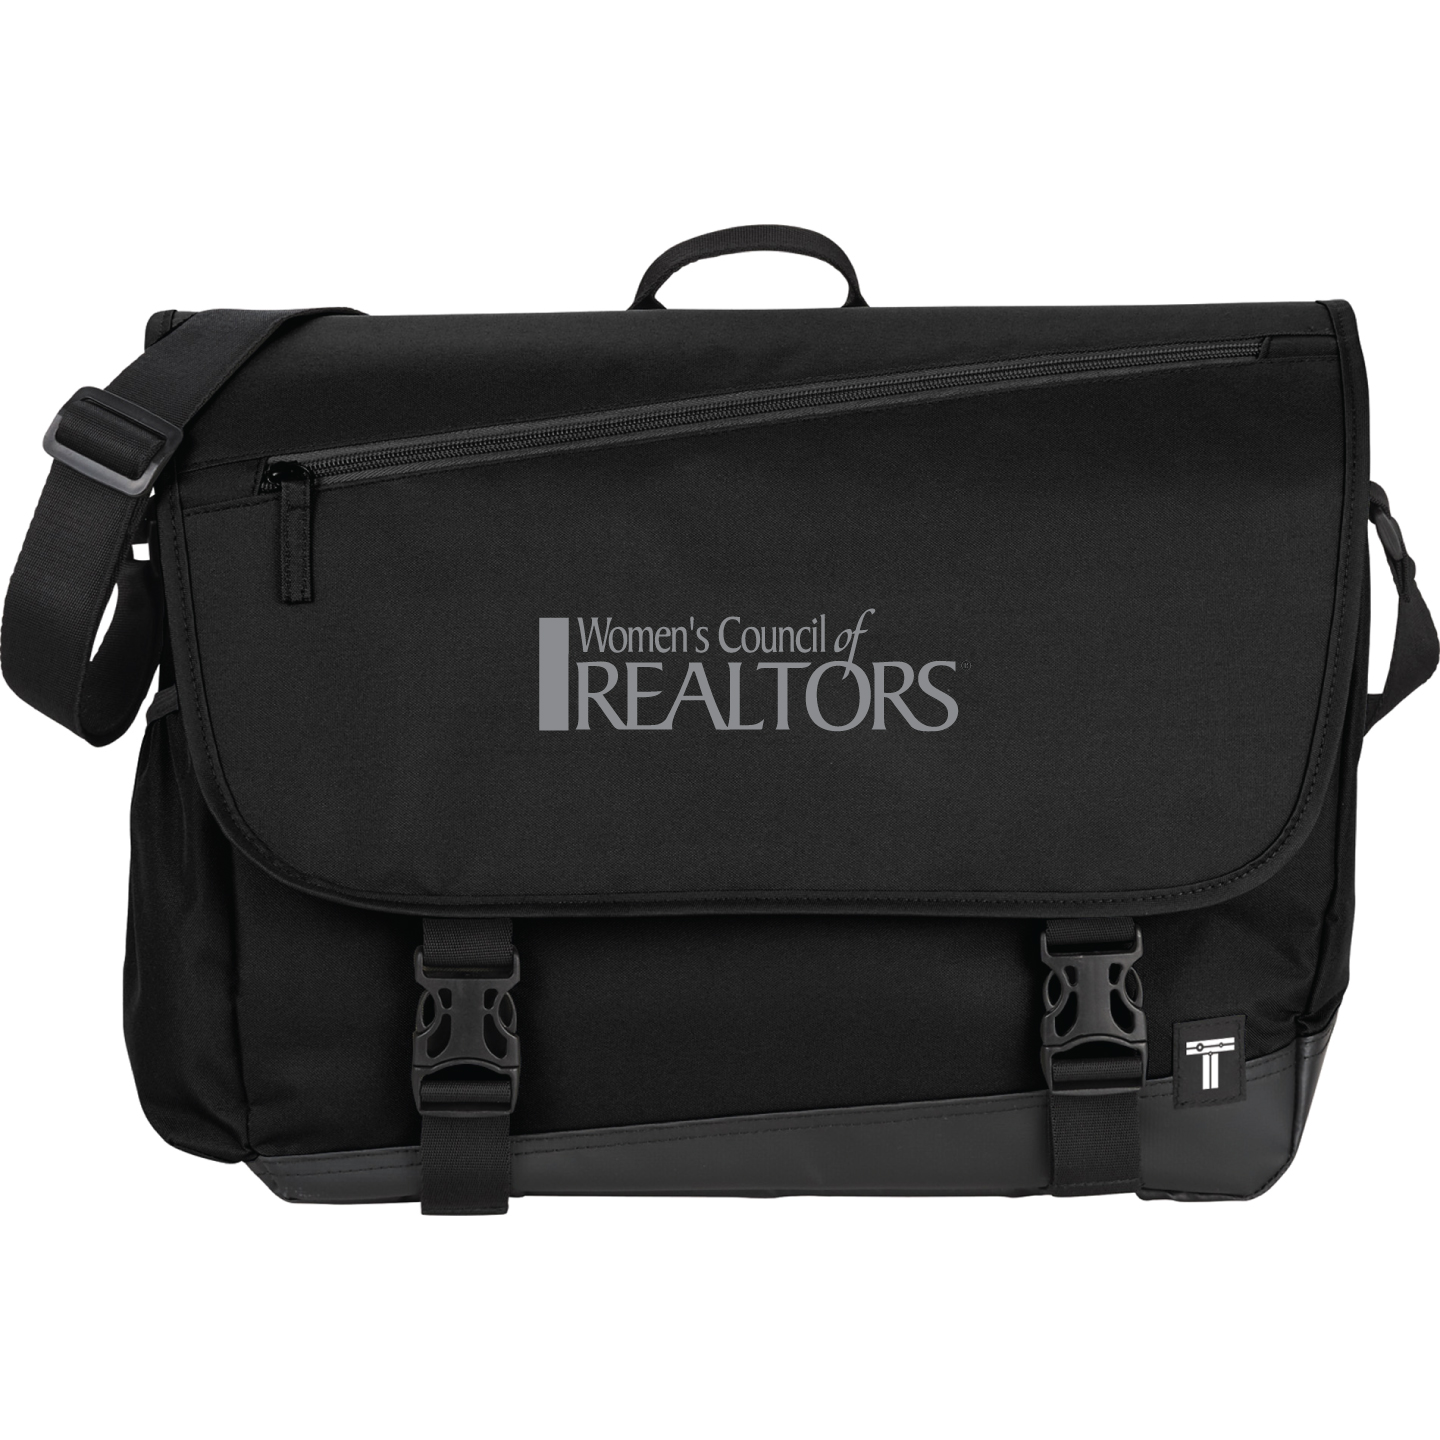 WCR Tranzip Messenger Bag Totes,Computers,Tablets,Bags,Shoulders,Cases,Straps,Laptops,Macbooks,